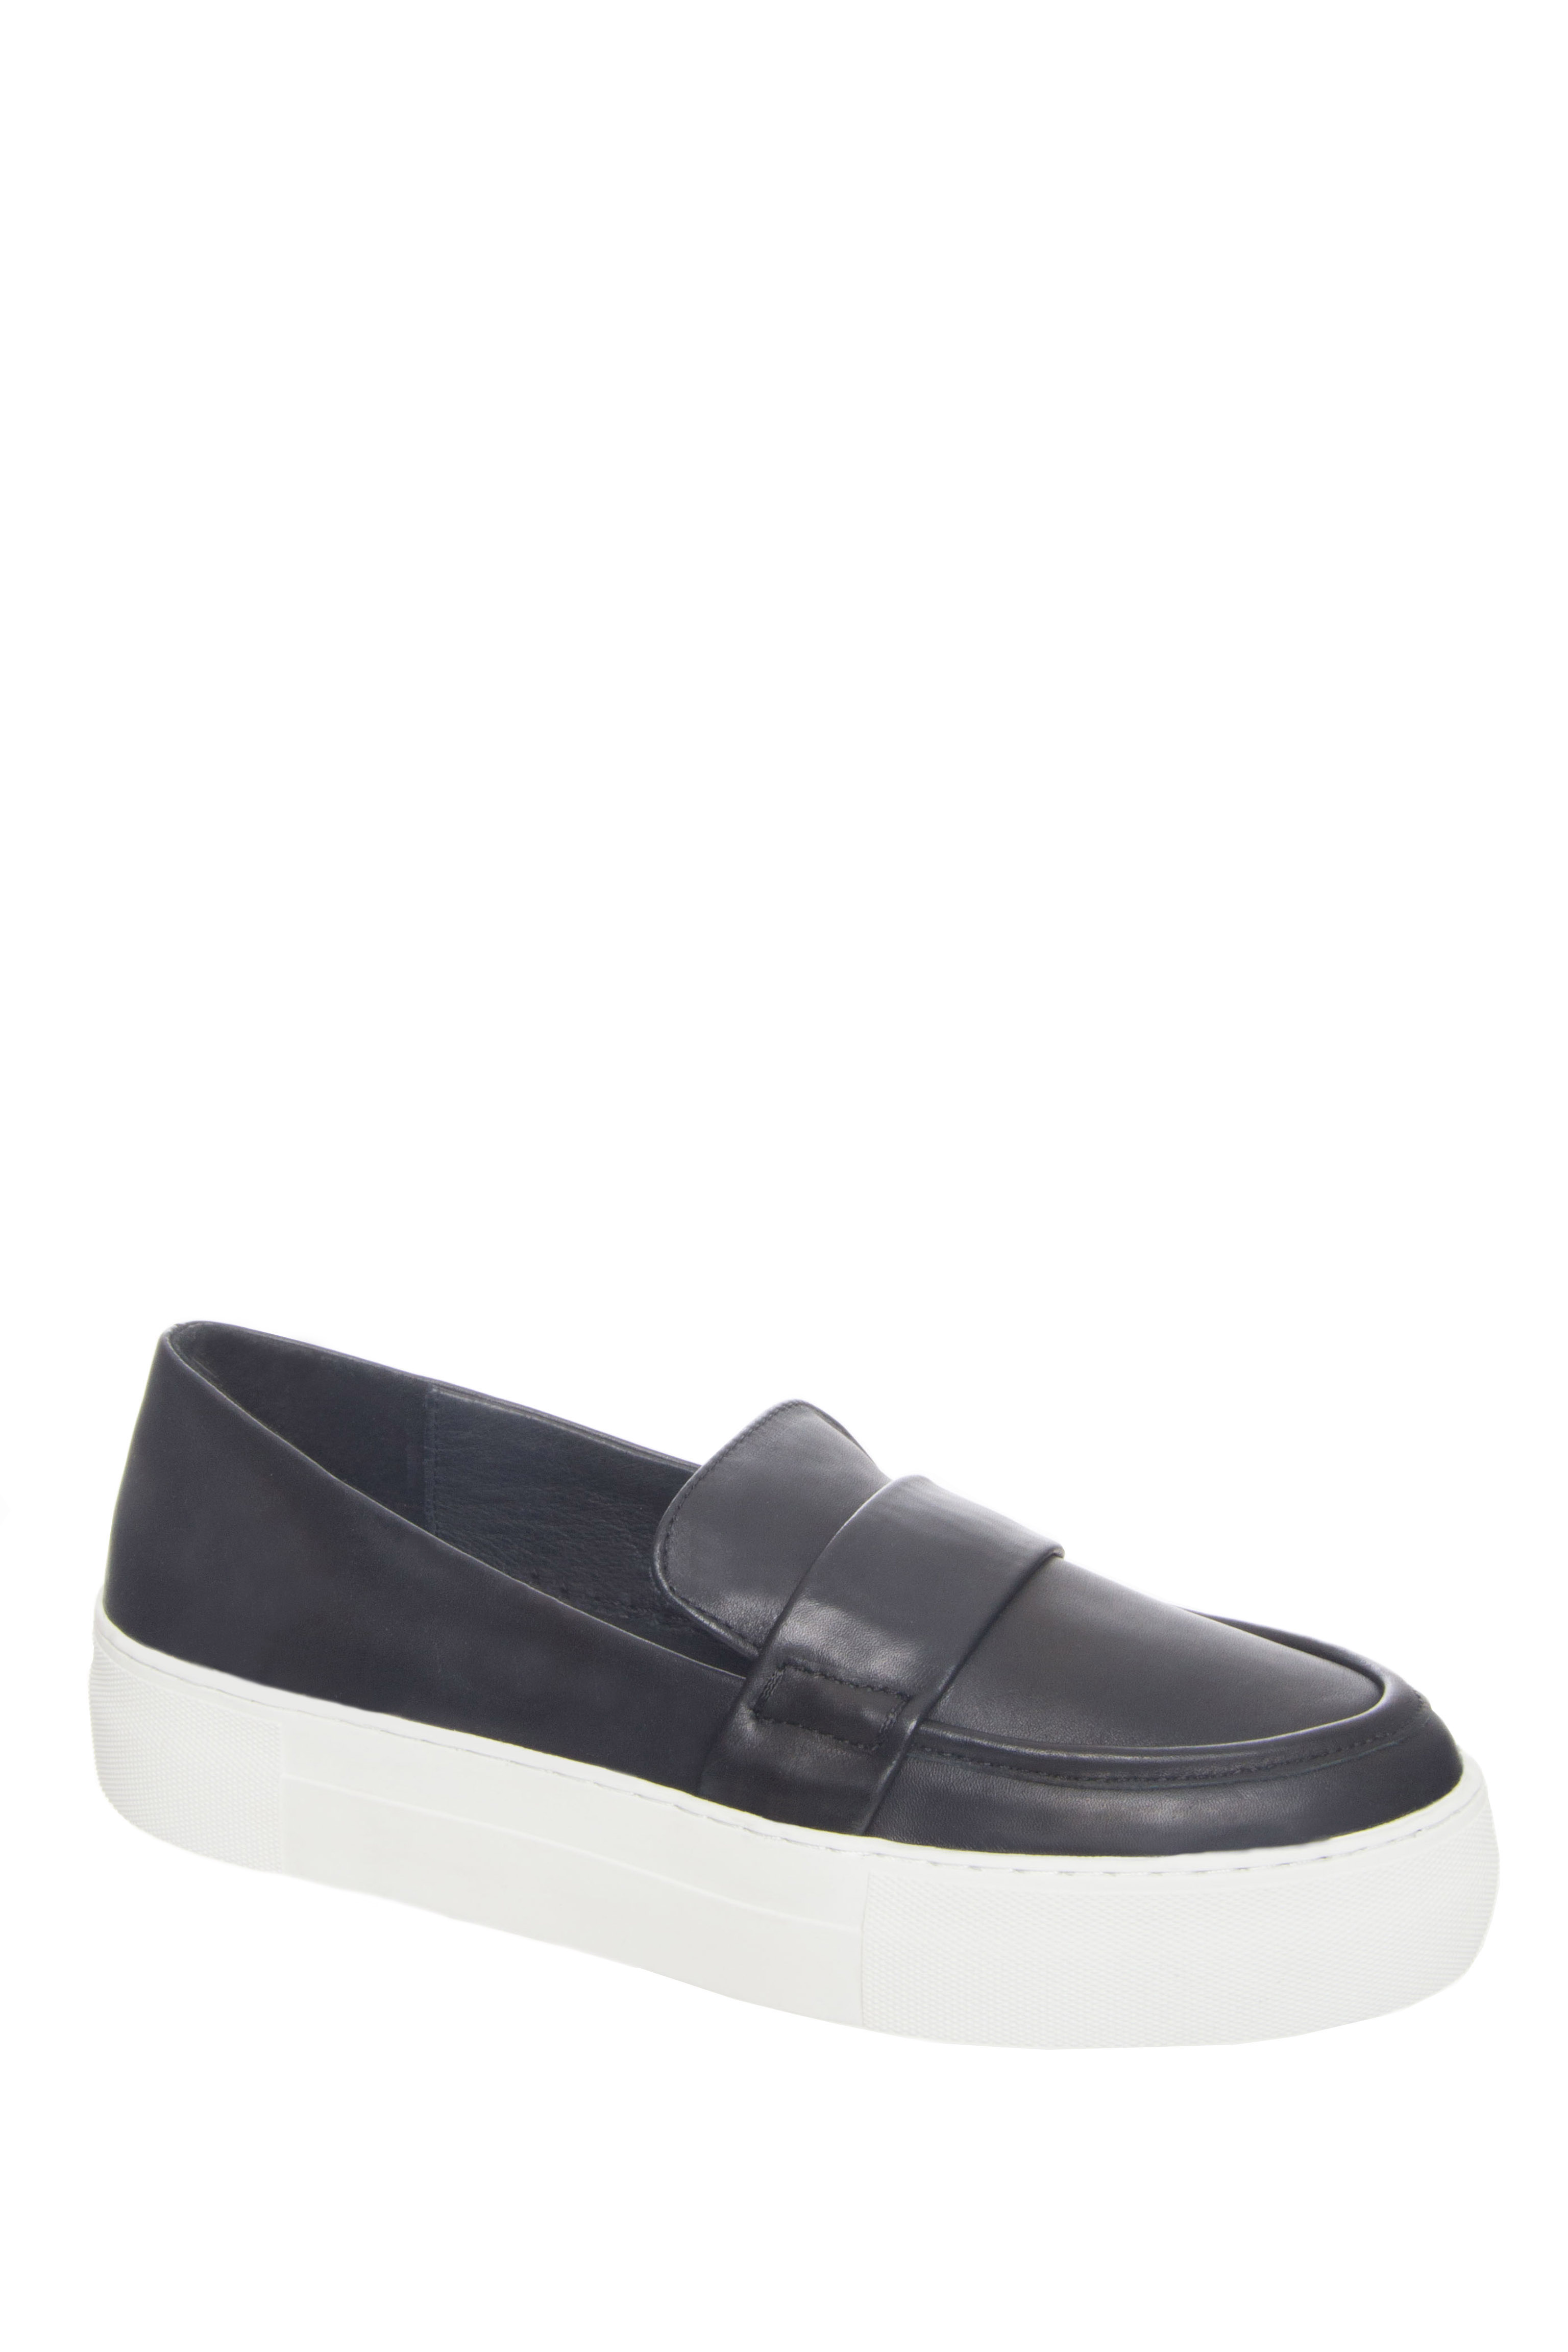 J Slides Page Platform Slip On Sneakers - Black